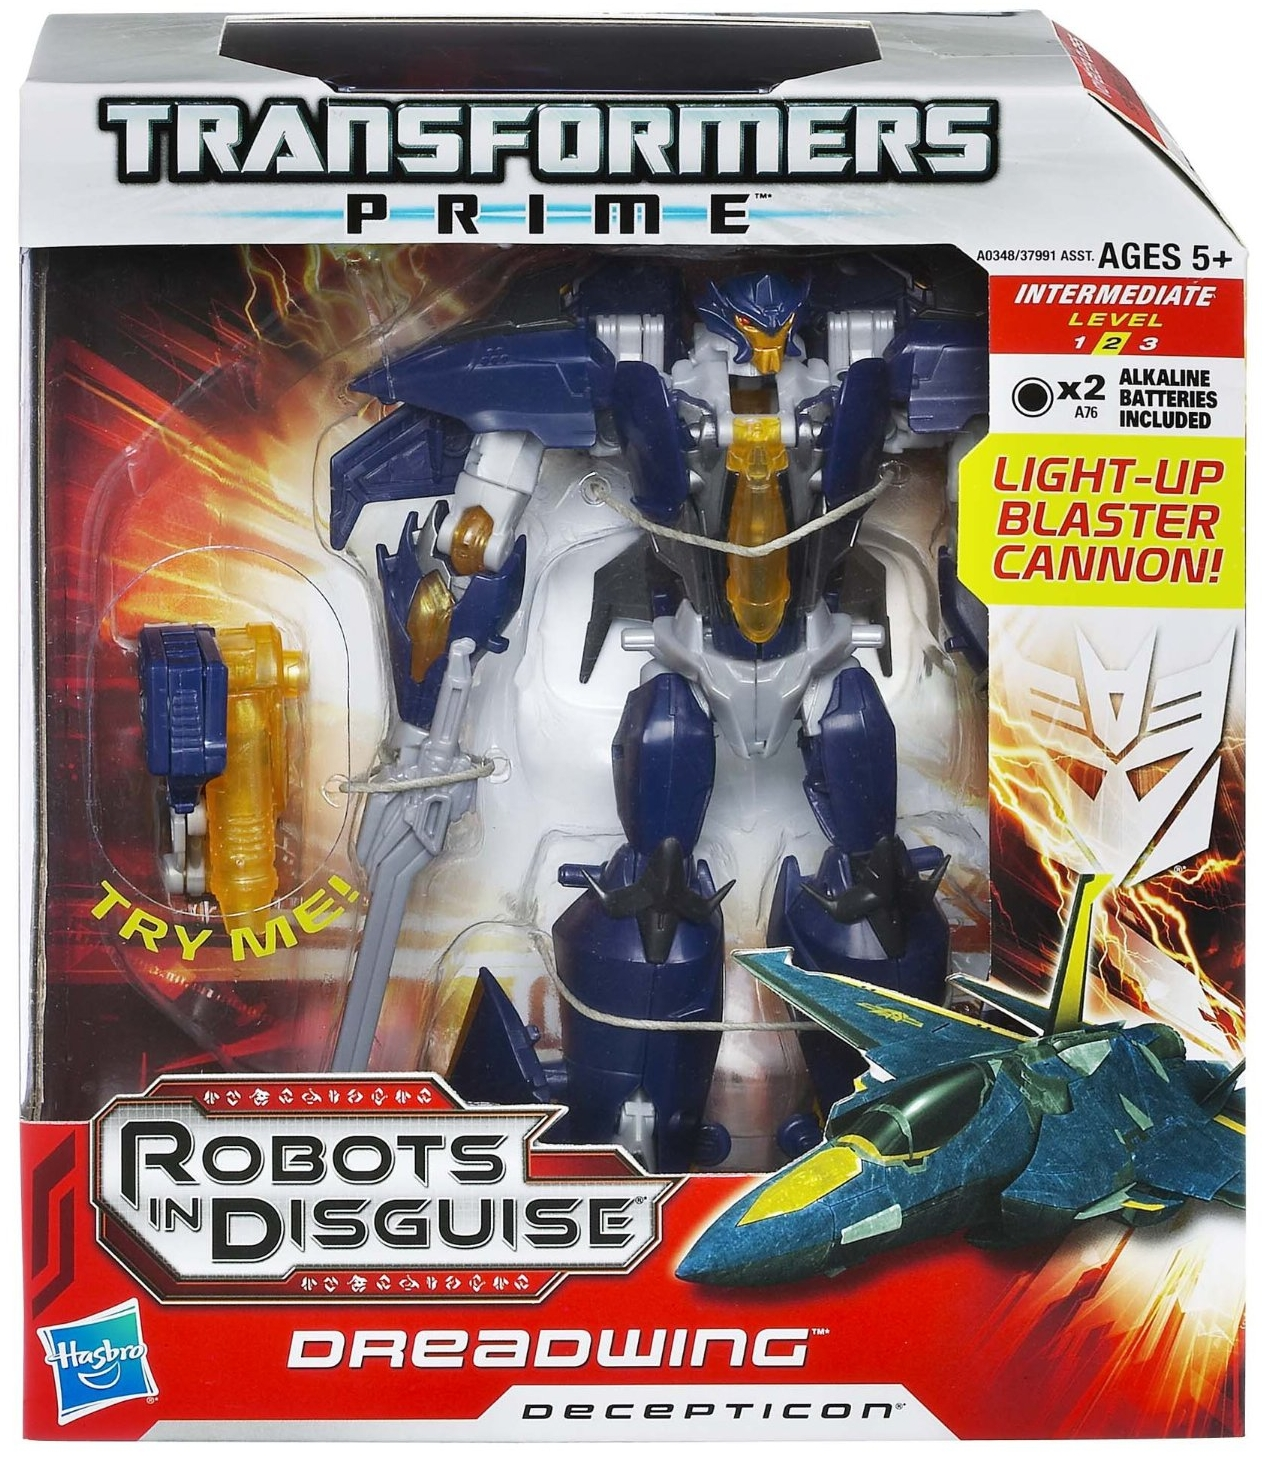 Dreadwing dreadwingcarded